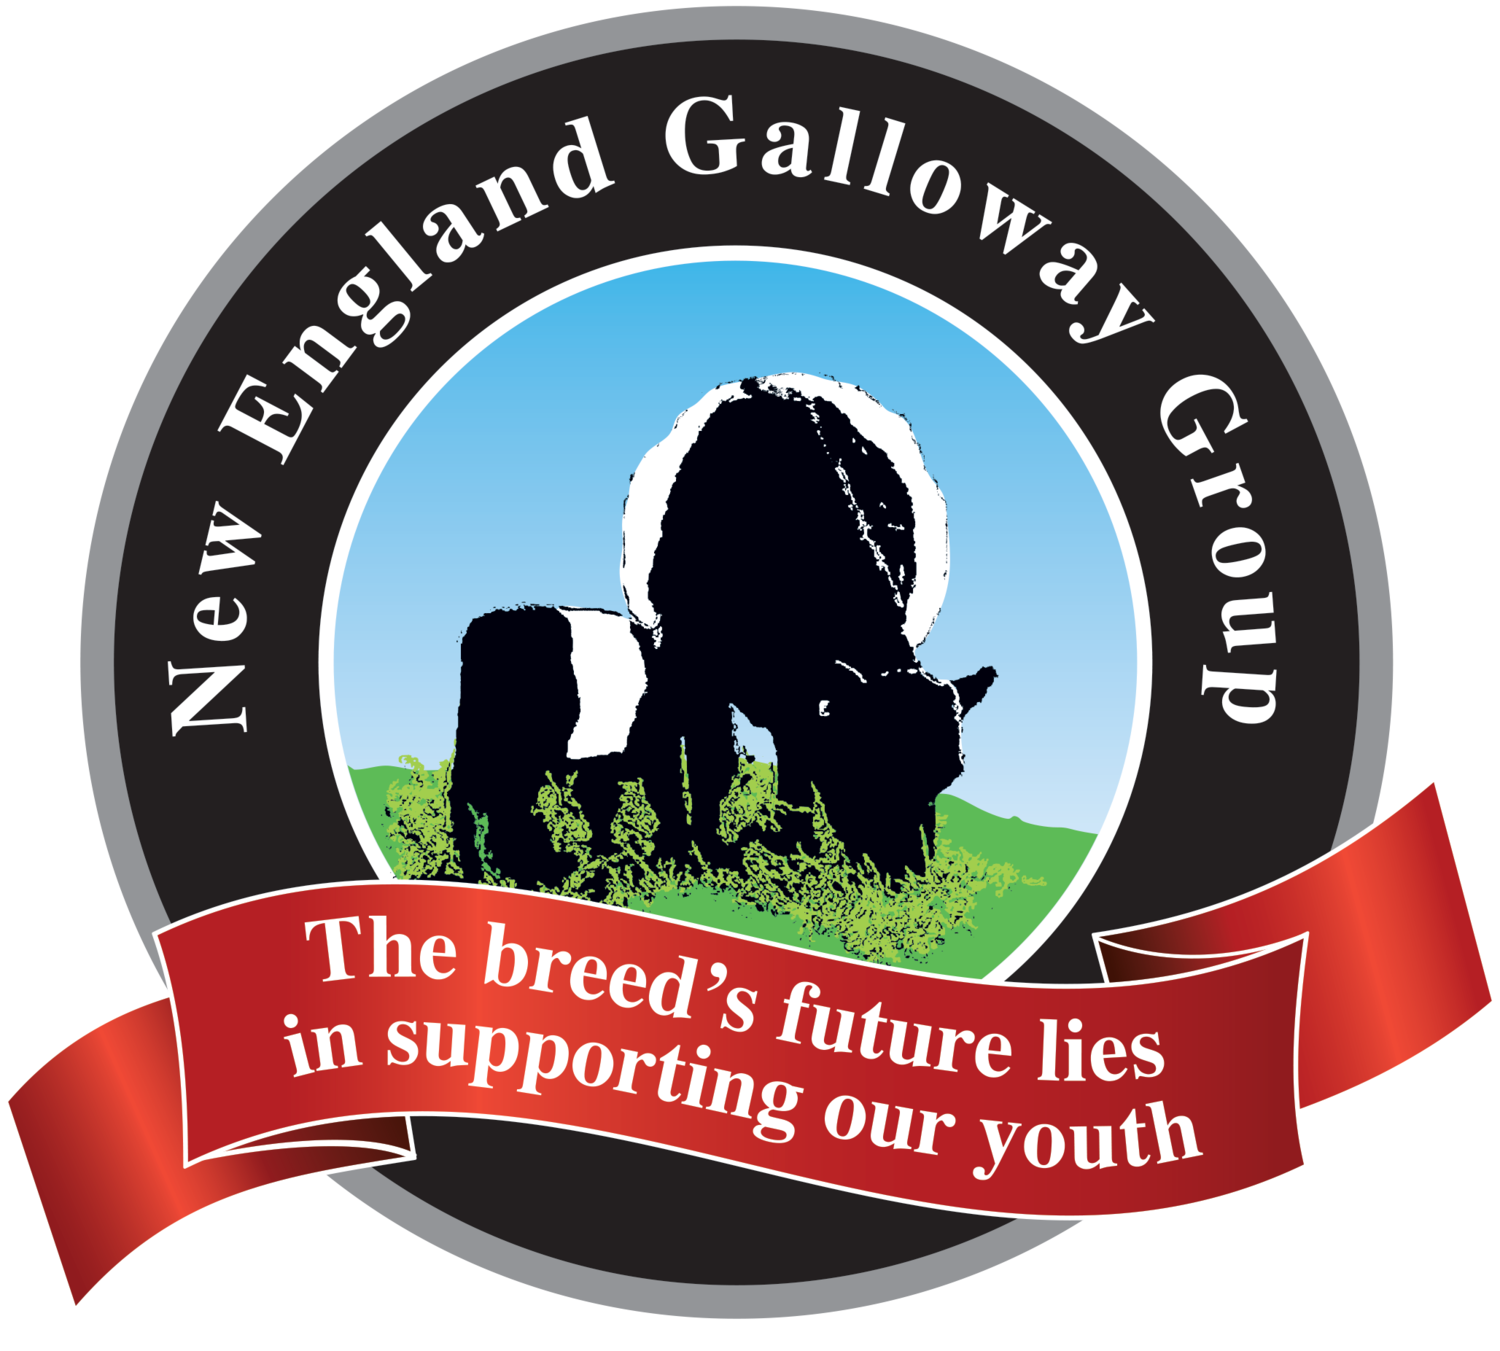 New England Galloway Group